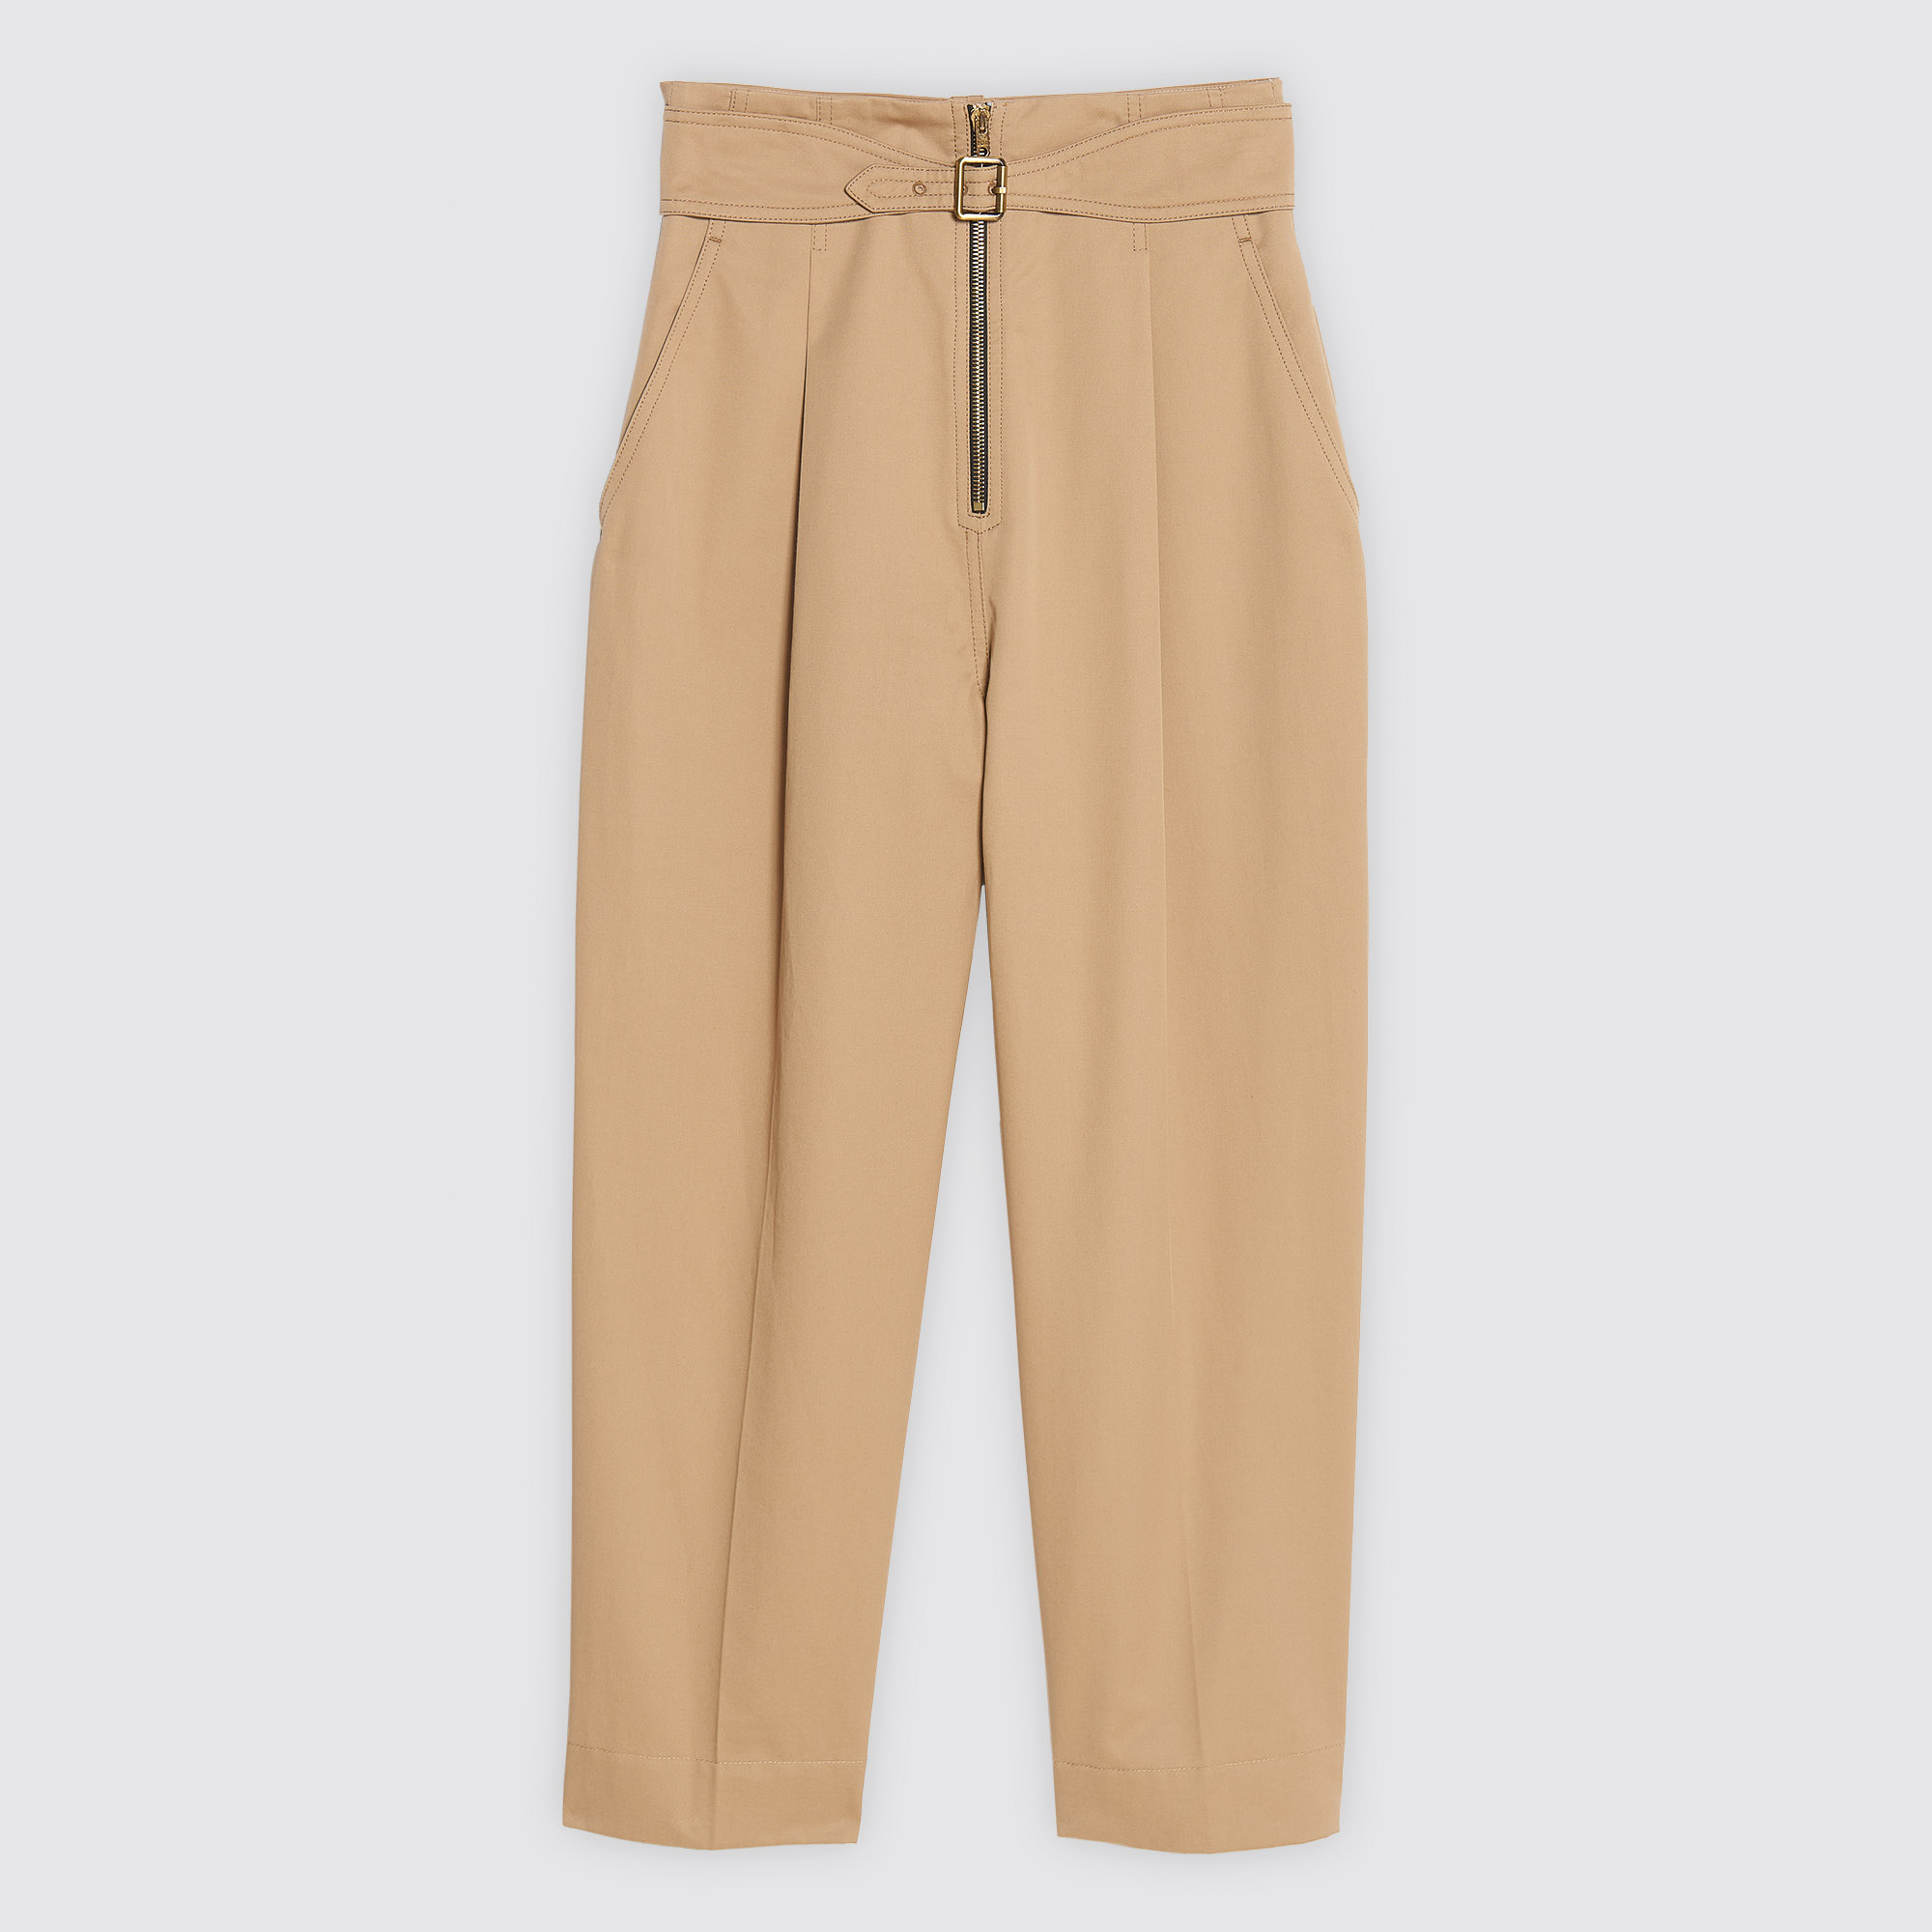 Zipped cotton trousers with belt : Pants & Shorts color Beige